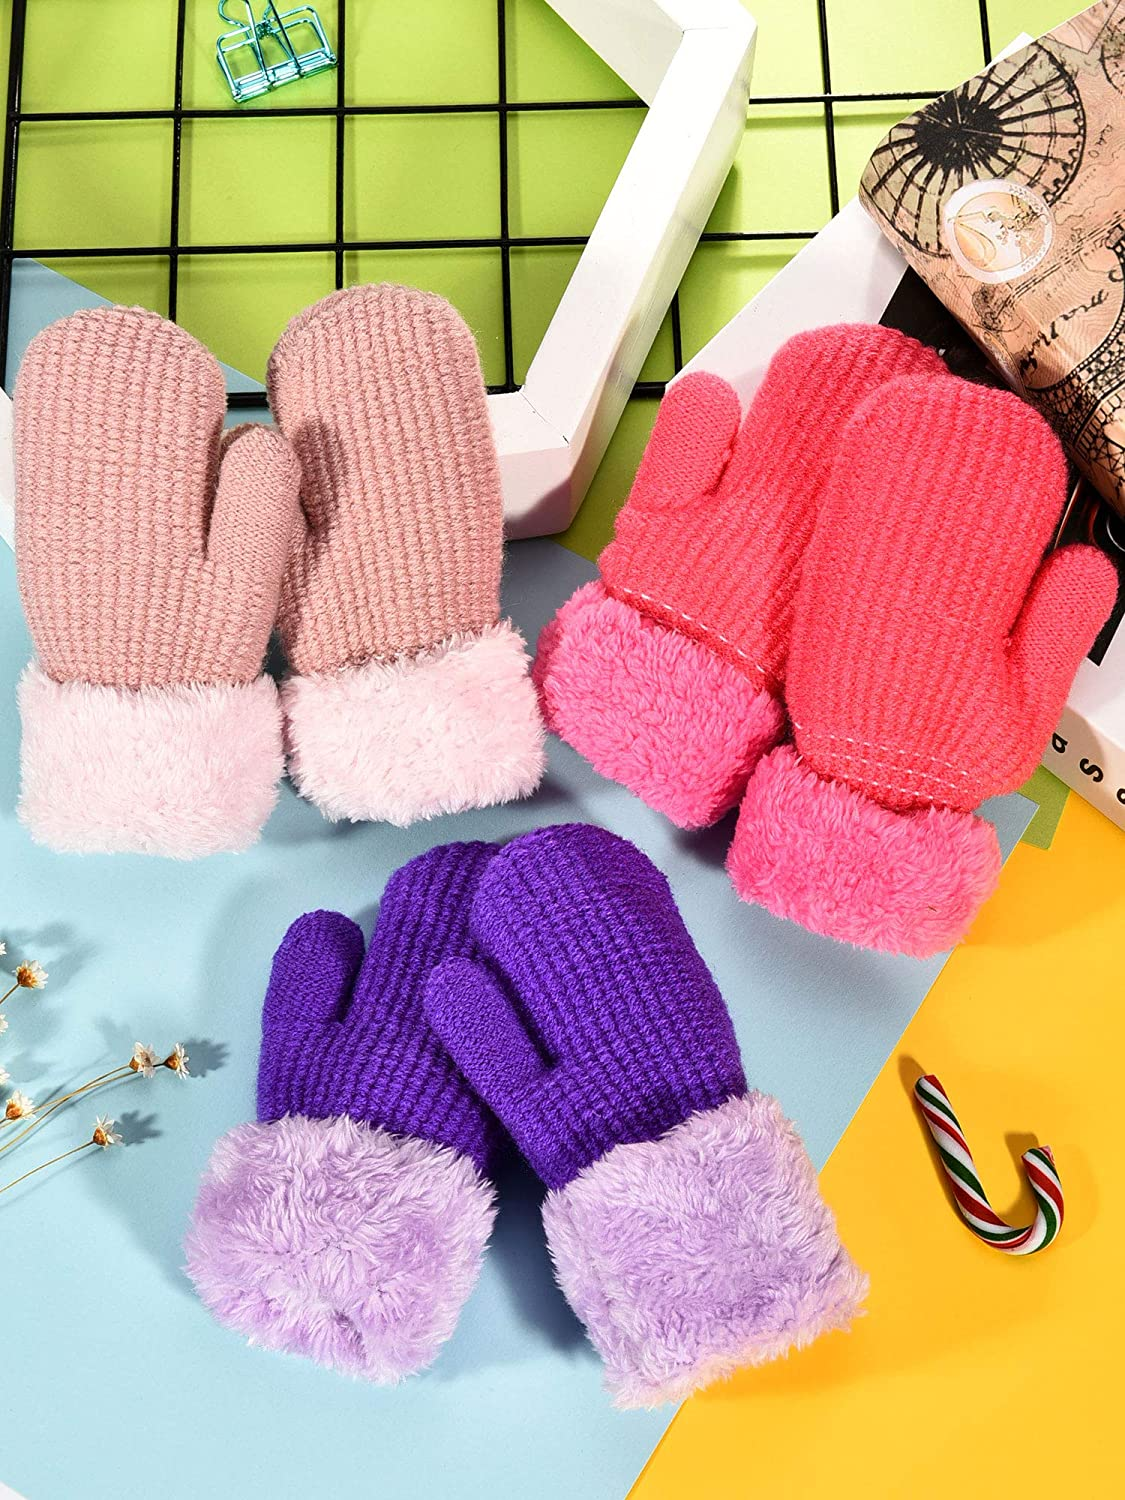 Sumind 3 Pairs Winter Toddler Gloves Mittens Warm Plush Lined Knit Gloves Full Fingers Chunky Mittens for Girls